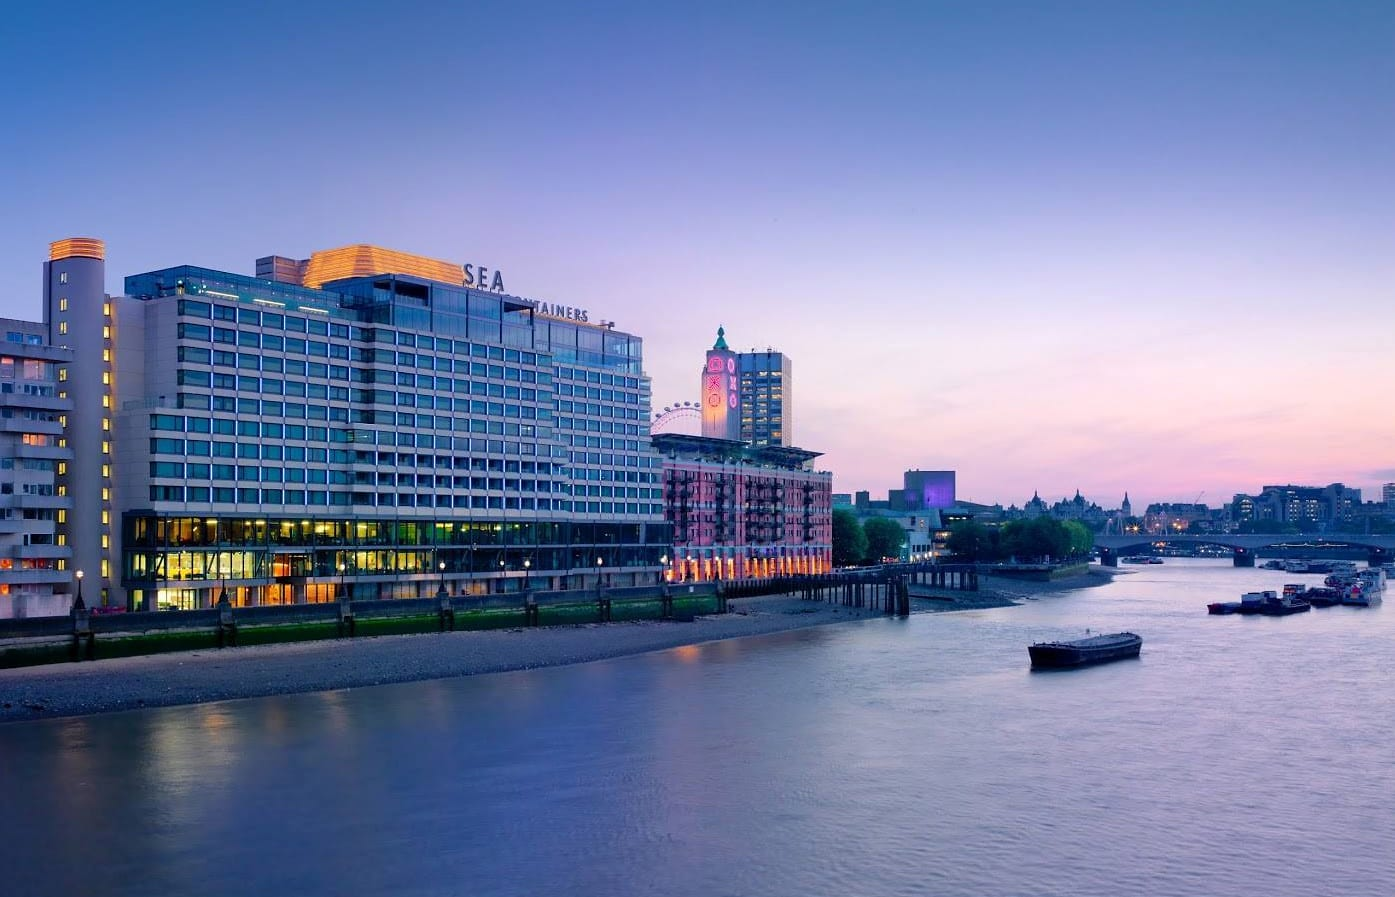 Sea Containers London in London, United Kingdom. Hotel Review by TravelPlusStyle. Photo © Sea Containers Hotel